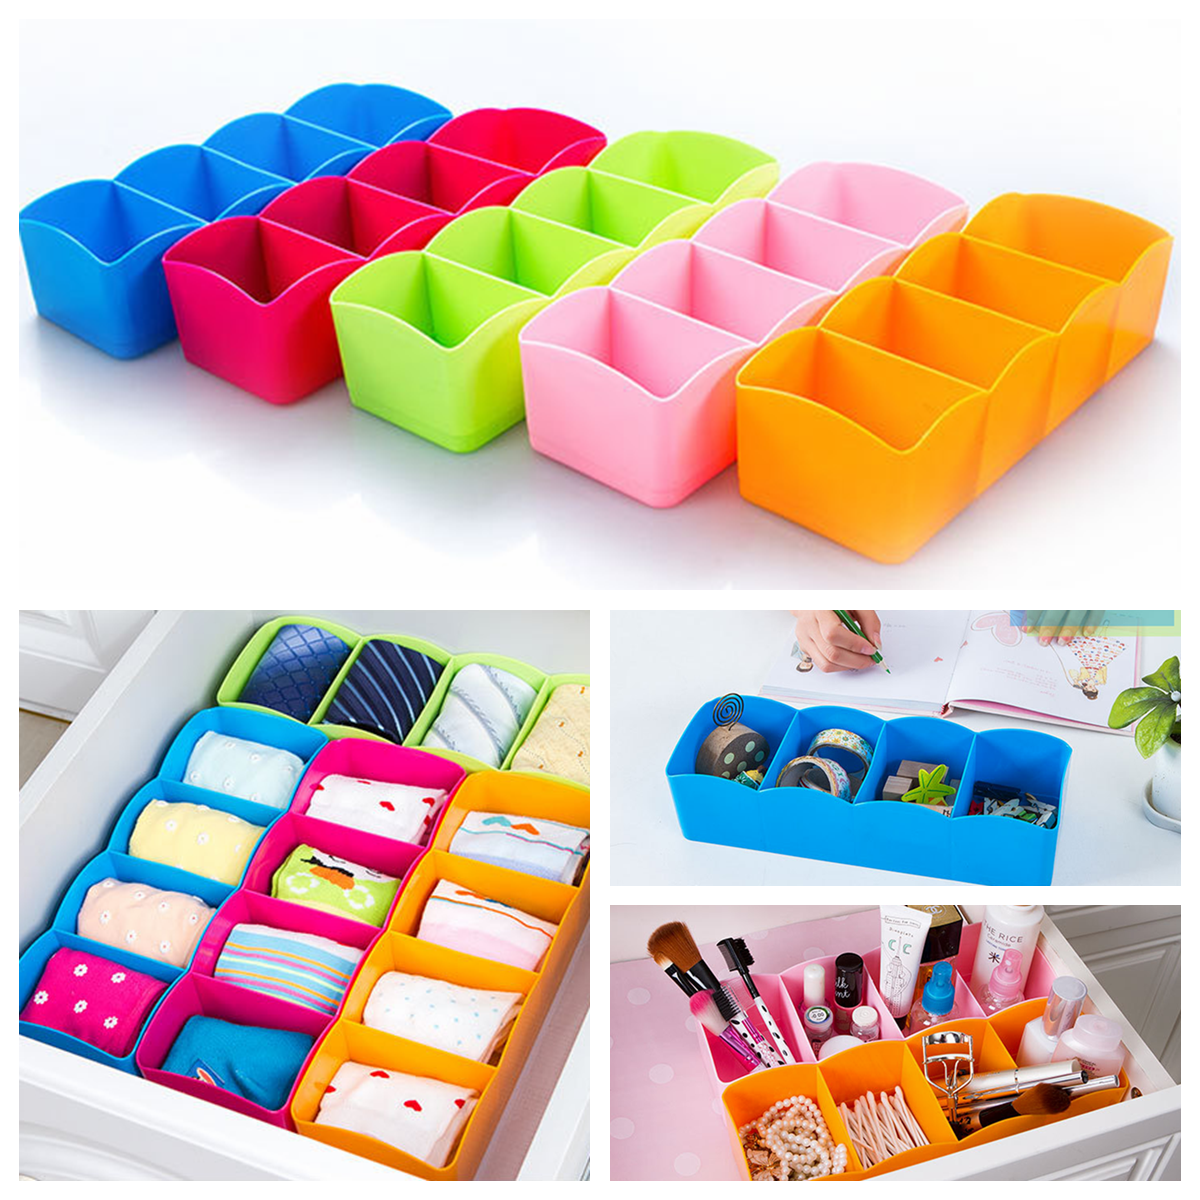 4 Cell Plastic nderwear Storage Box Organizer Drawer Divider Tie Socks Jewelry Cosmetic Makeup